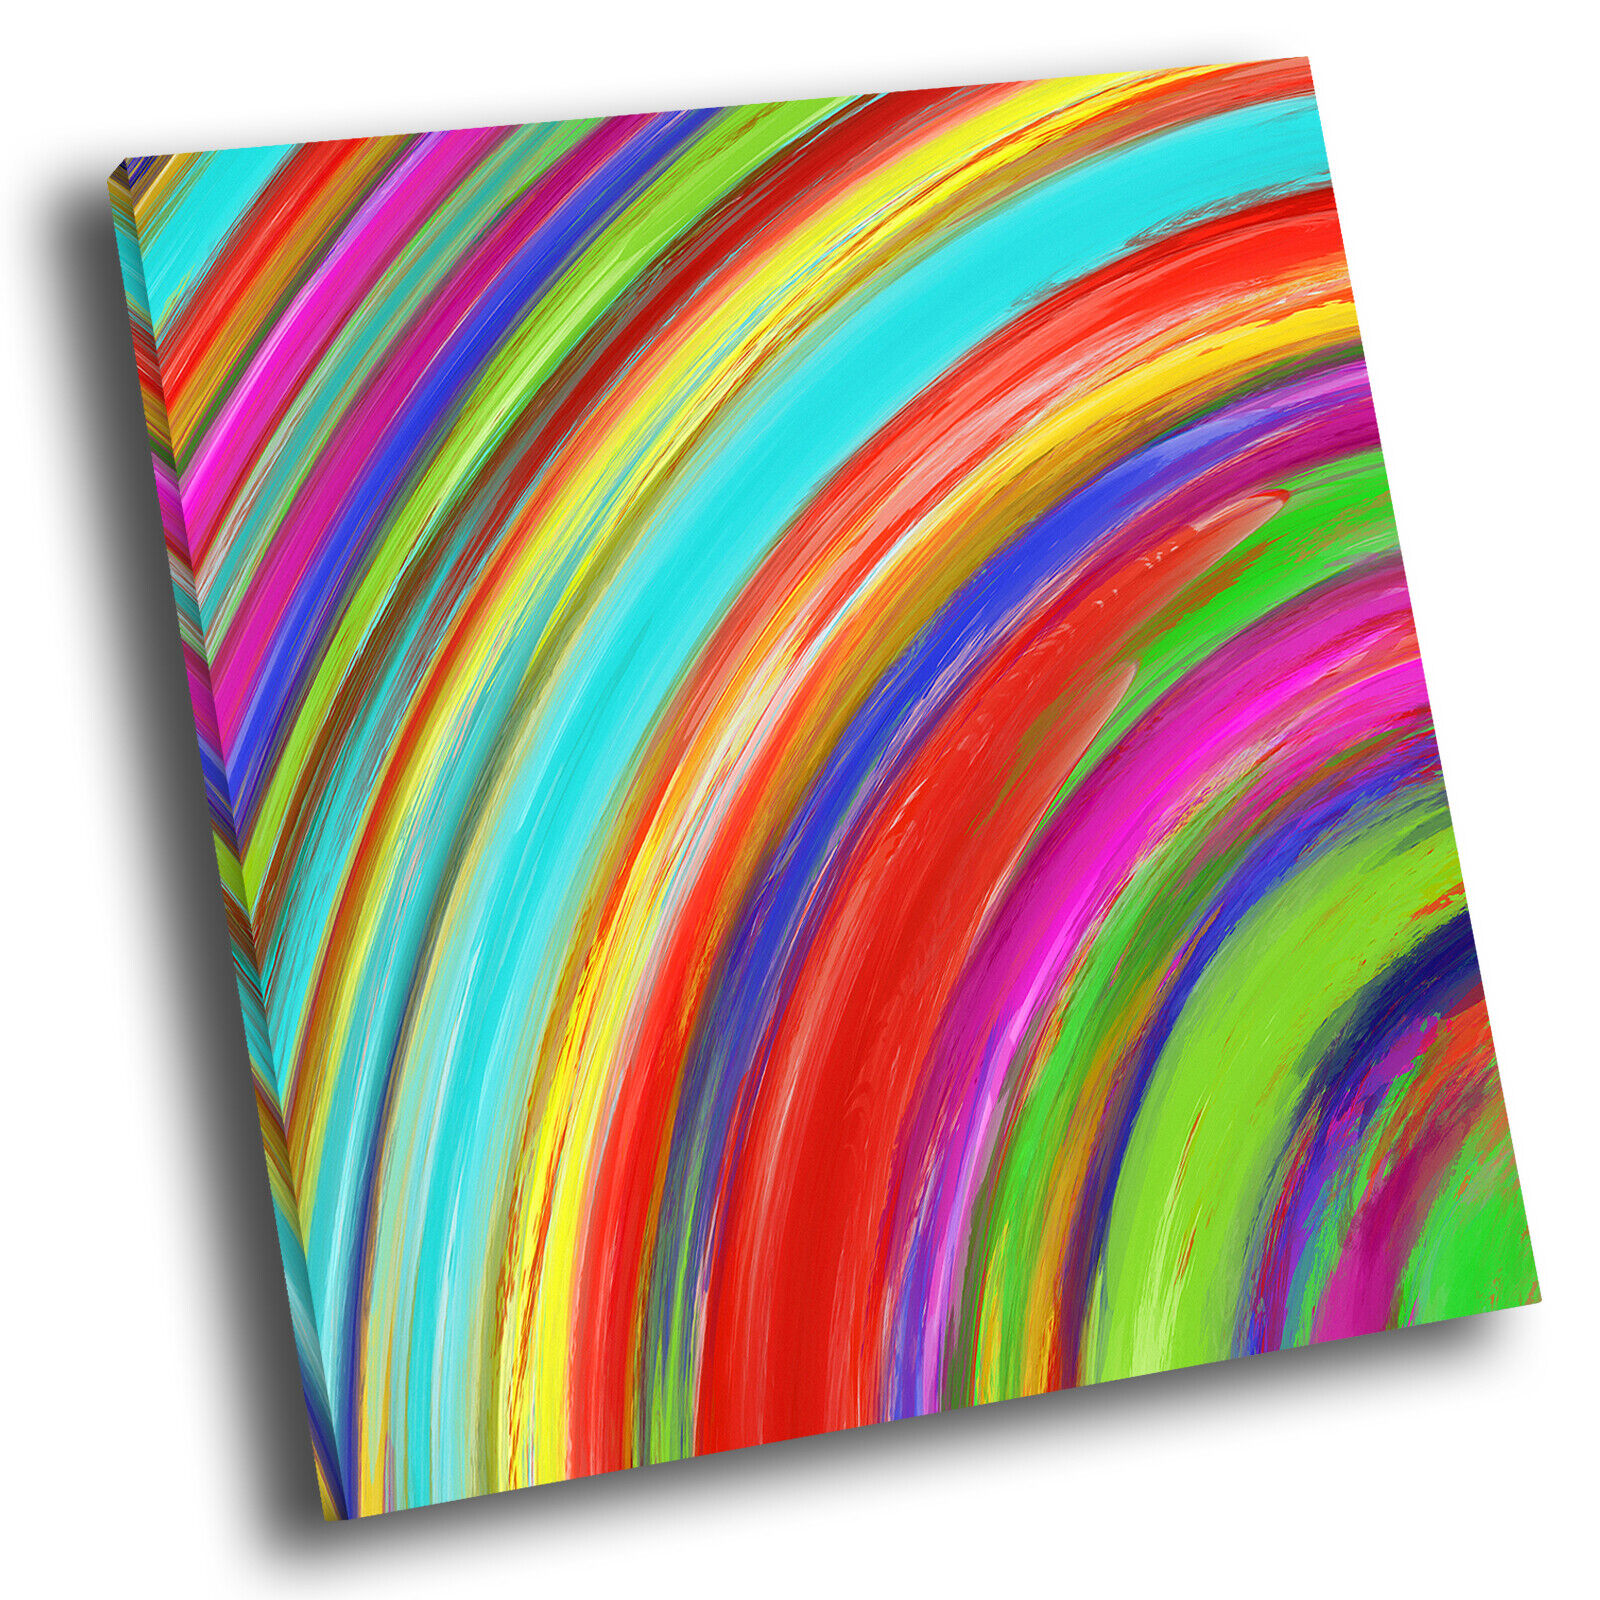 Colourful rot Blau Square Abstract Photo Canvas Wall Art Large Picture Prints